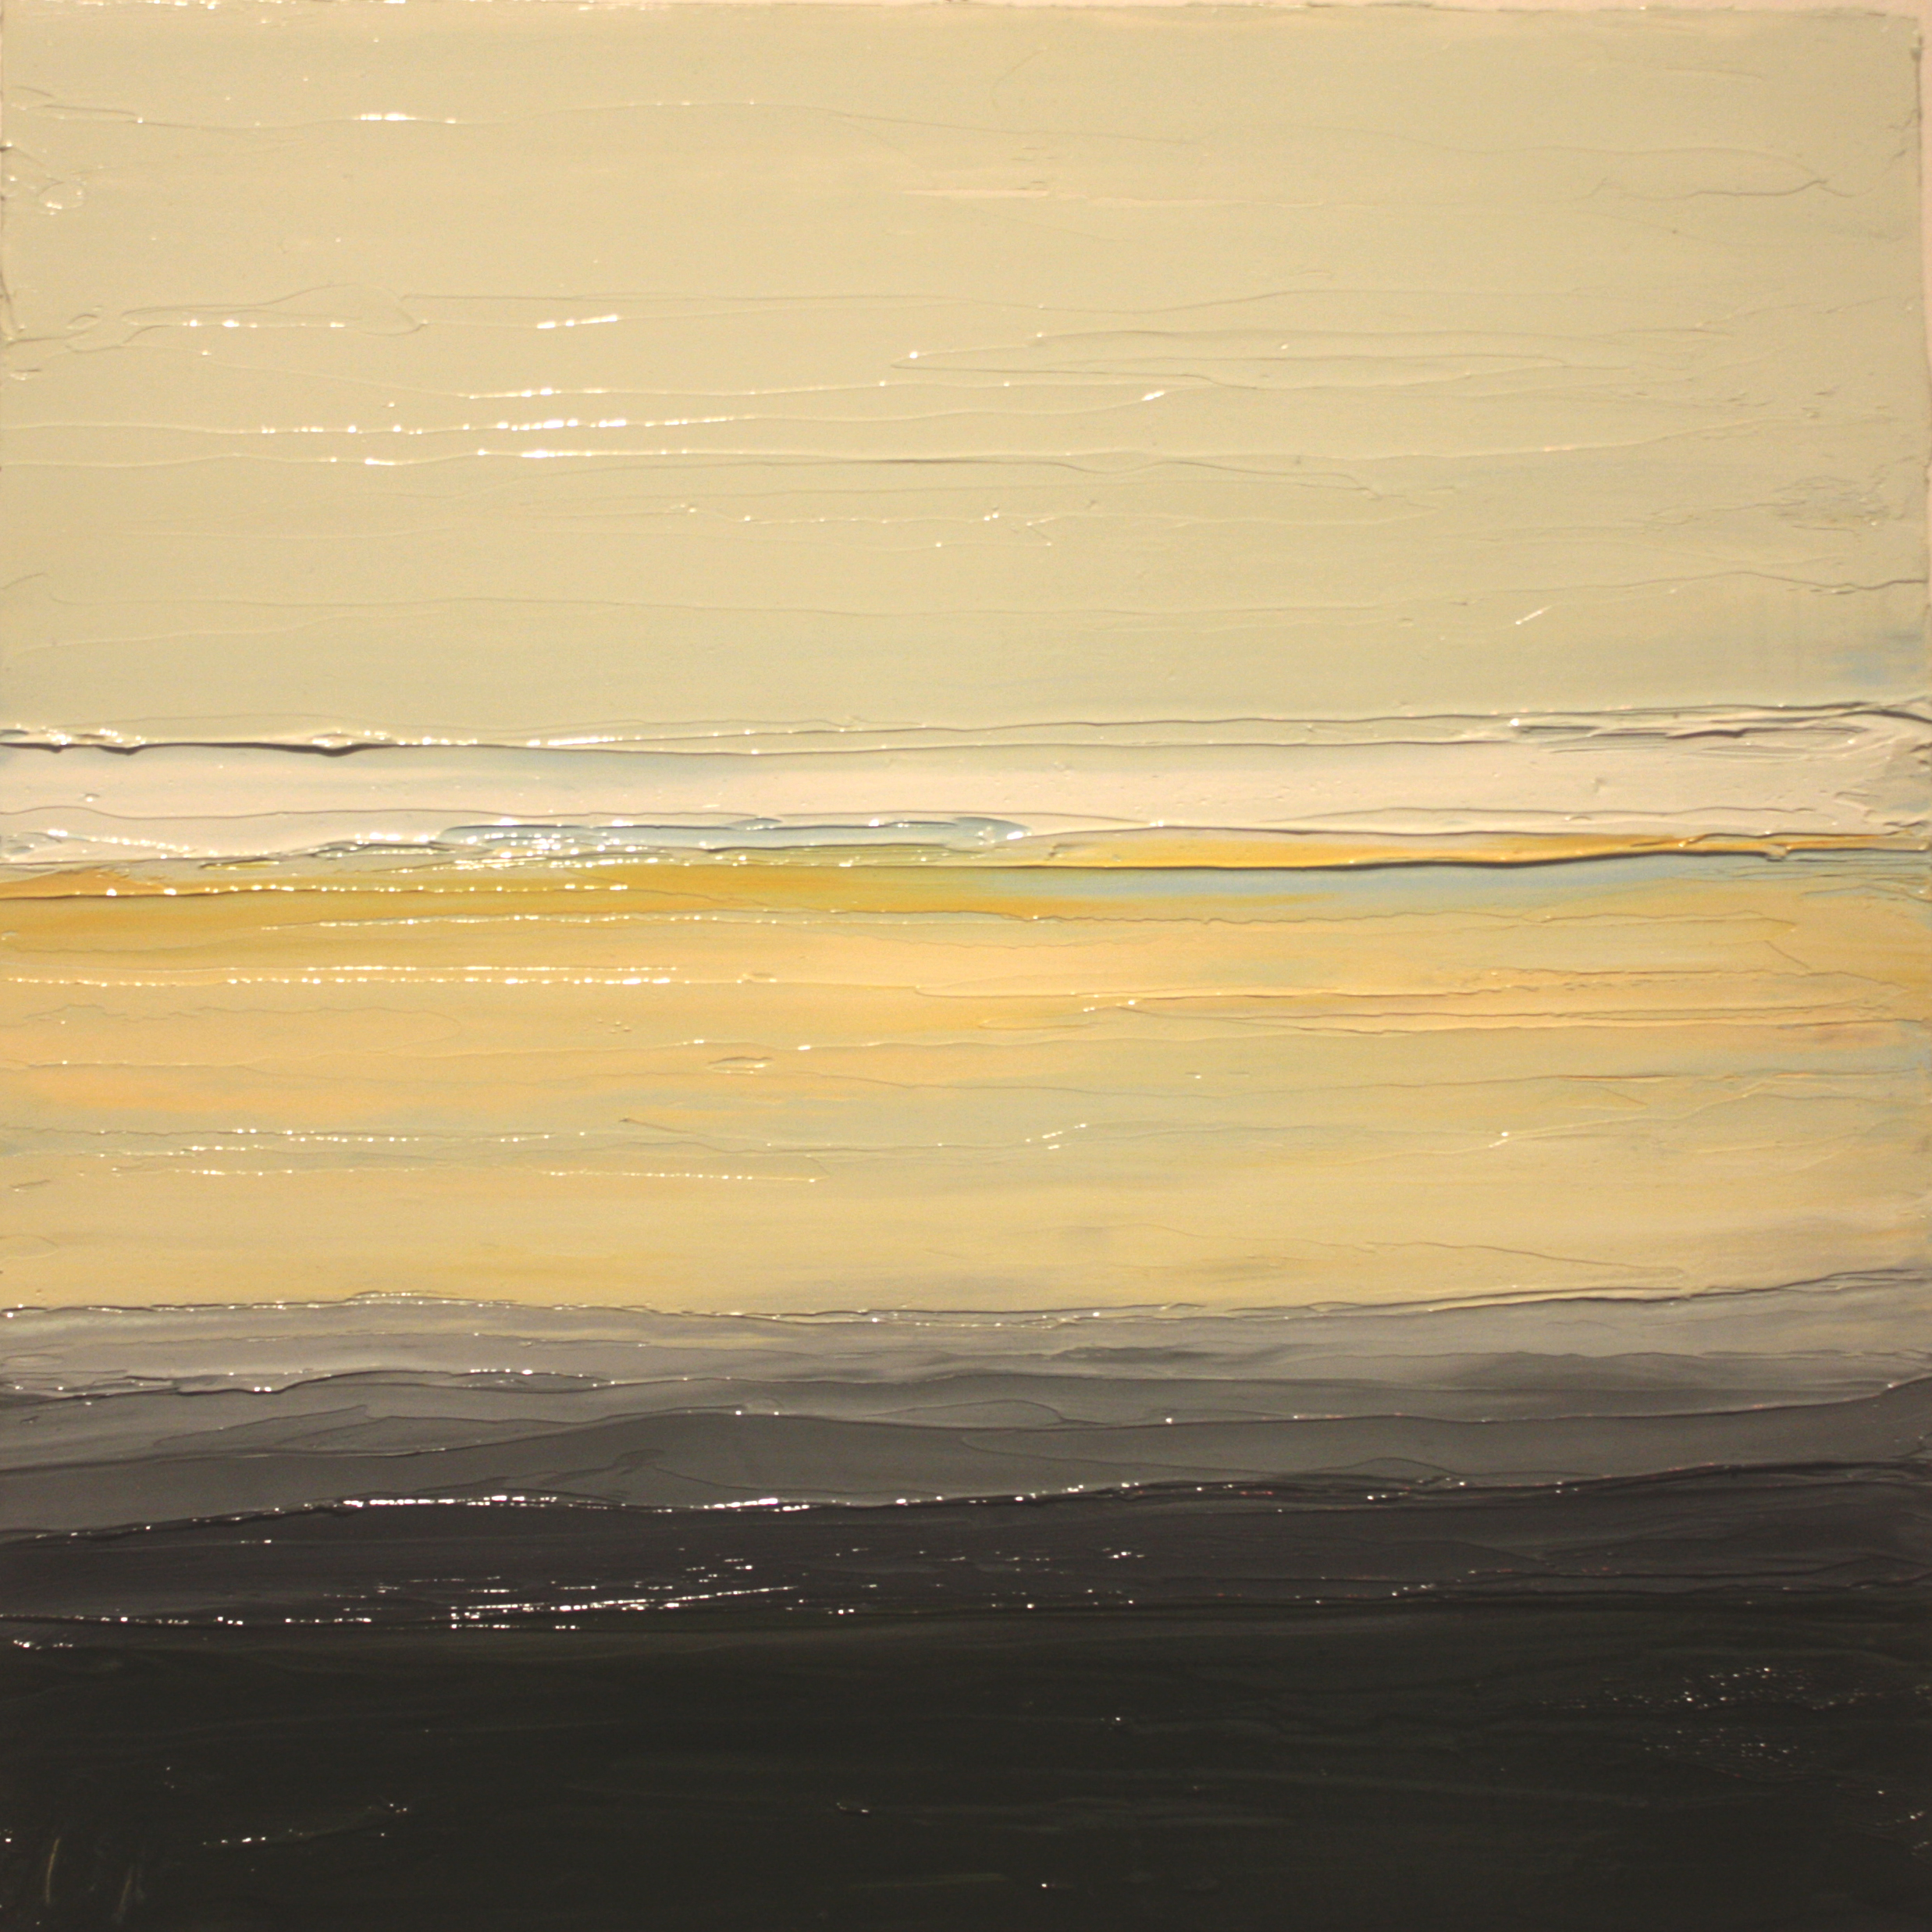 At The Horizon - Yellow Sky, oil on board, 12 by 12 inches, 2012 - $2500